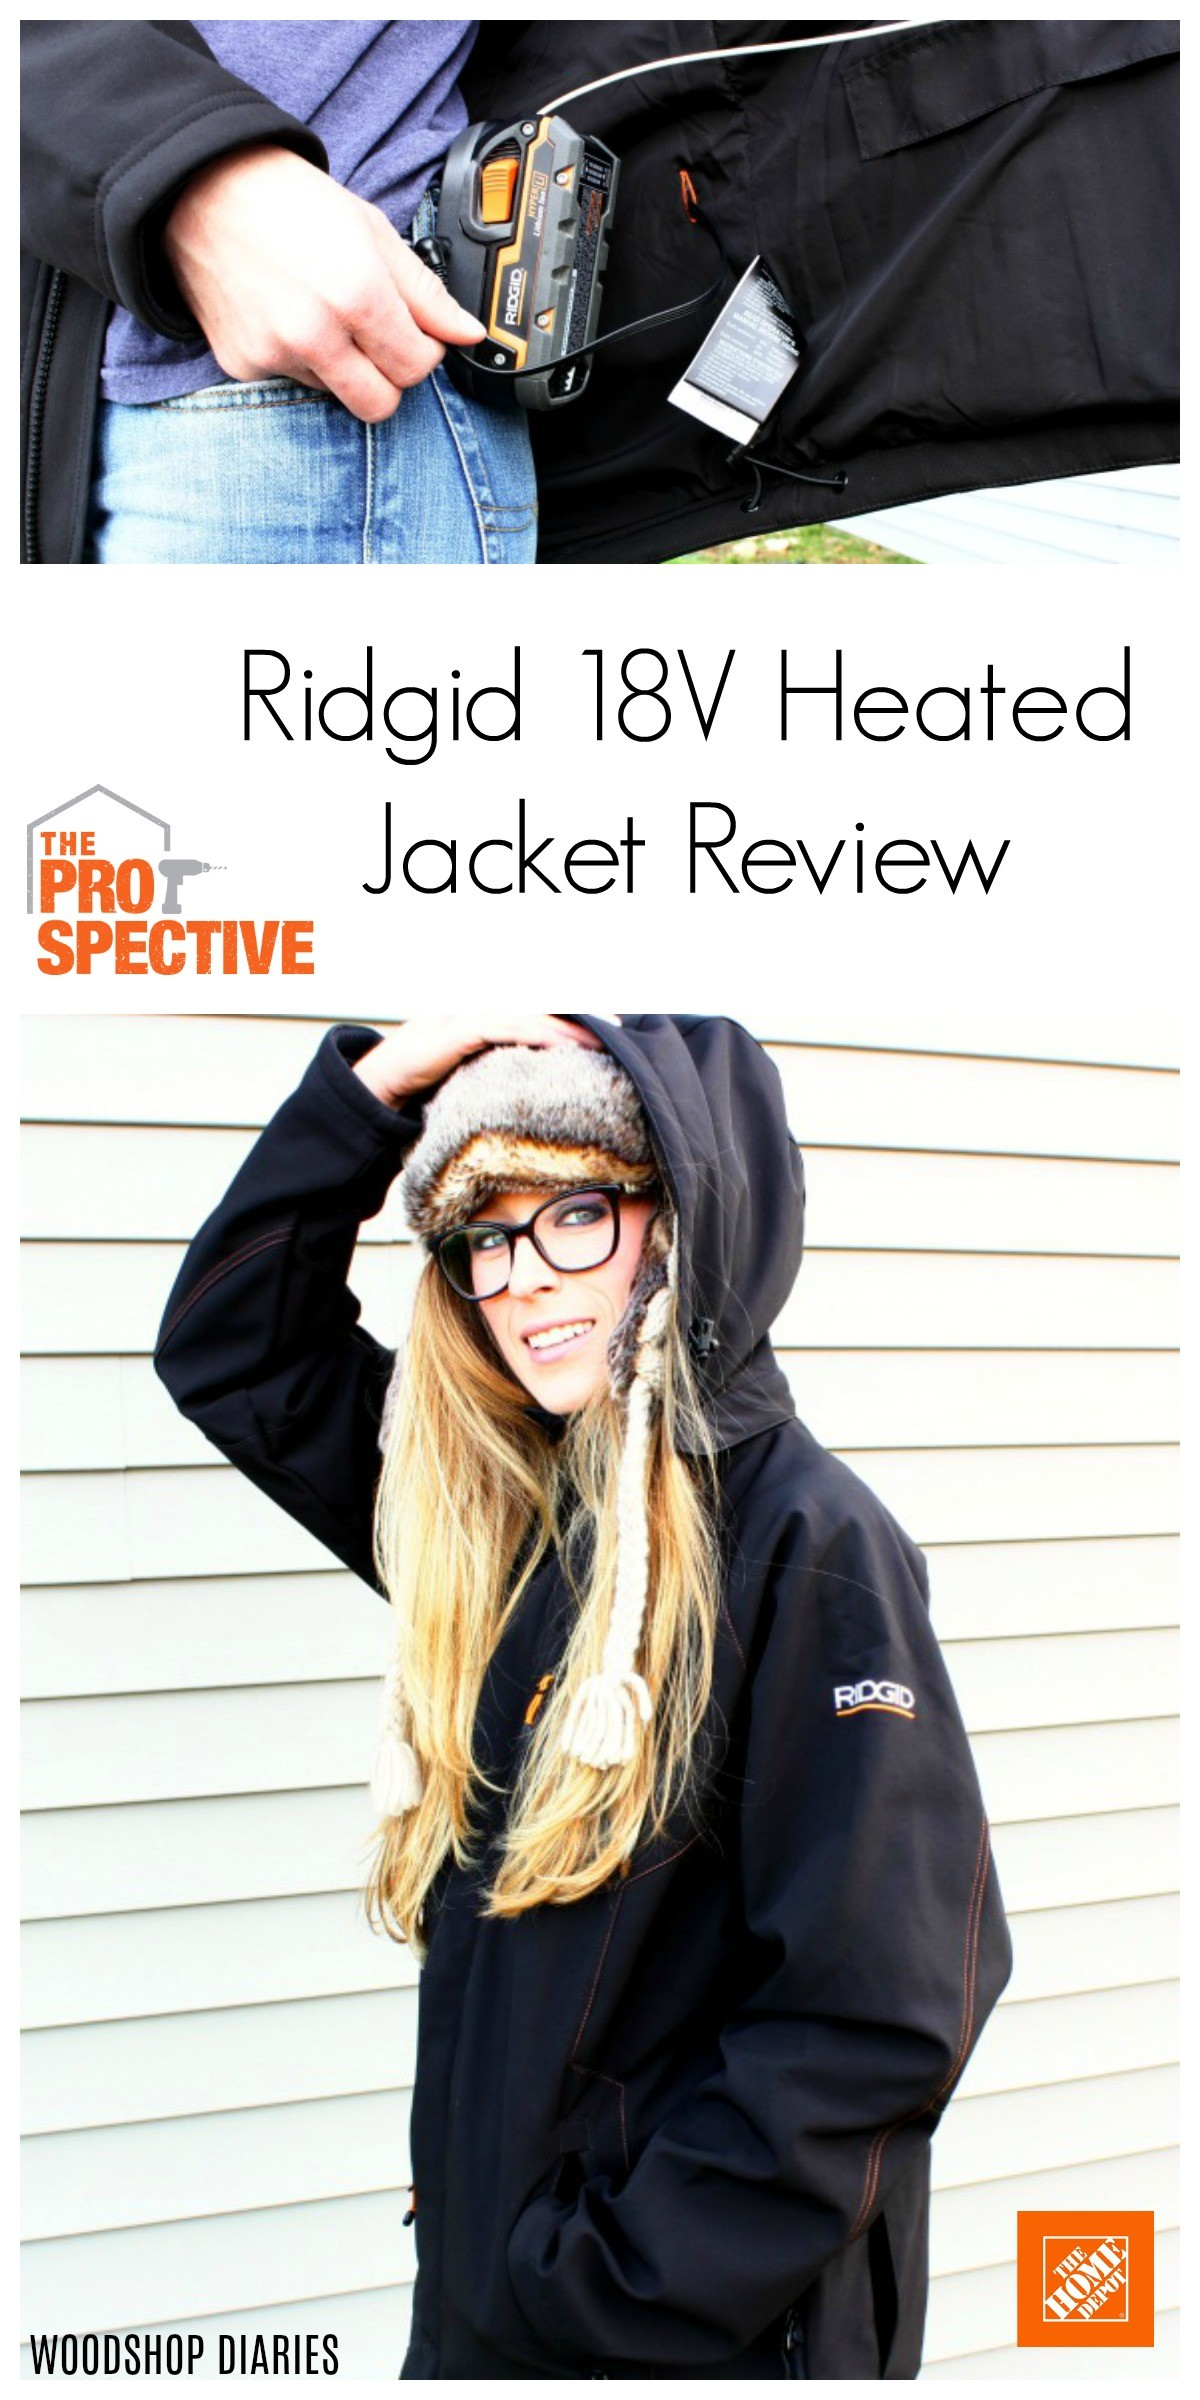 Ridgid 18V Battery Powered Heated Jacket Review Pin Image